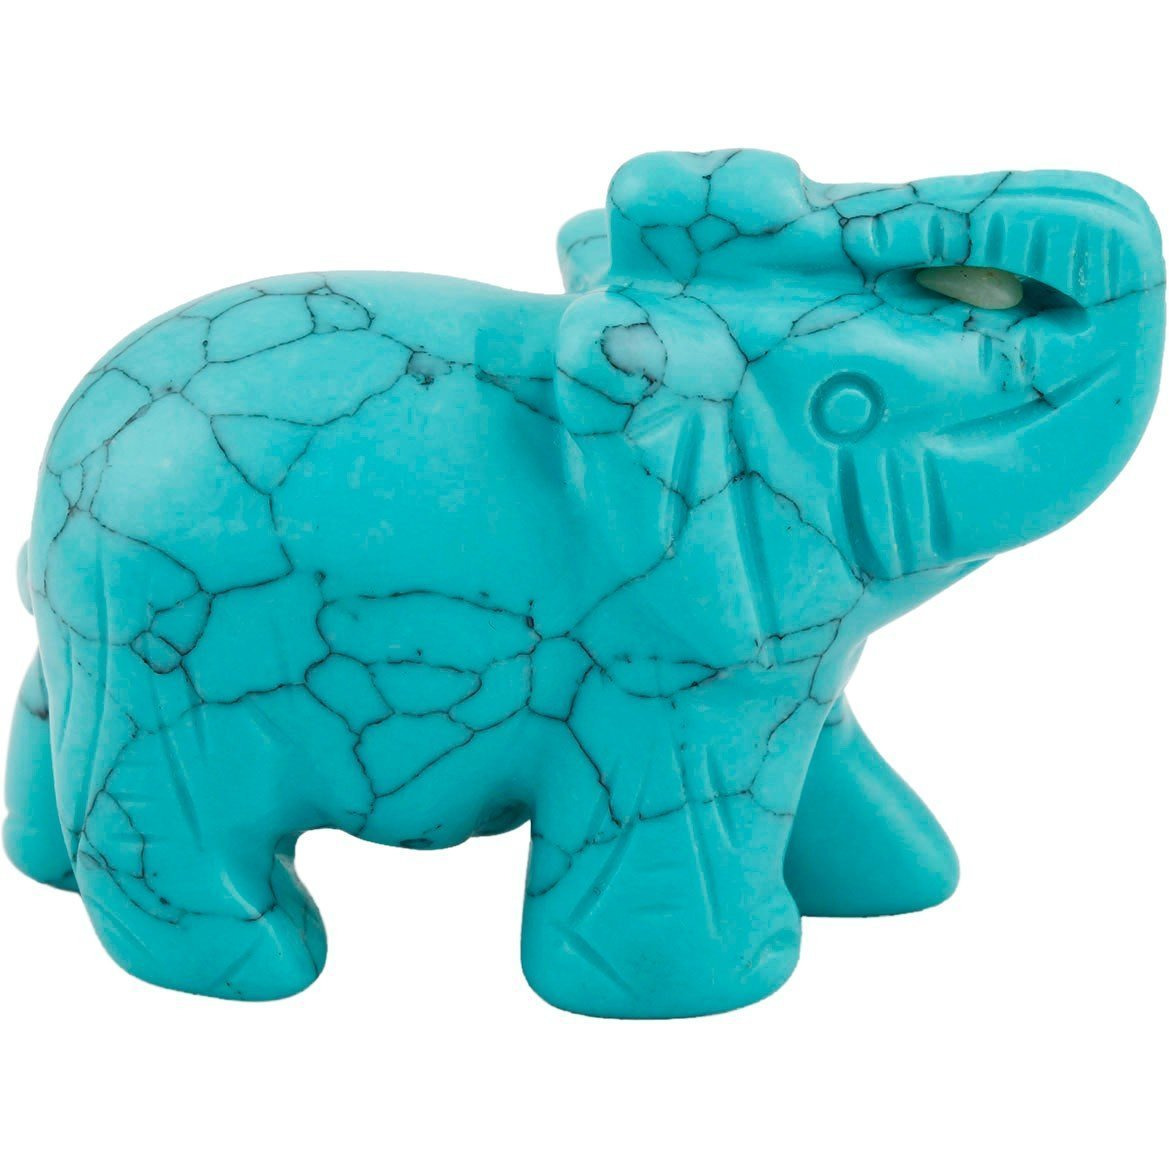 Winmaarc Healing Crystal Guardian Green Howlite Turquoise Elephant Pocket Stone Figurines Carved Gemstone 2